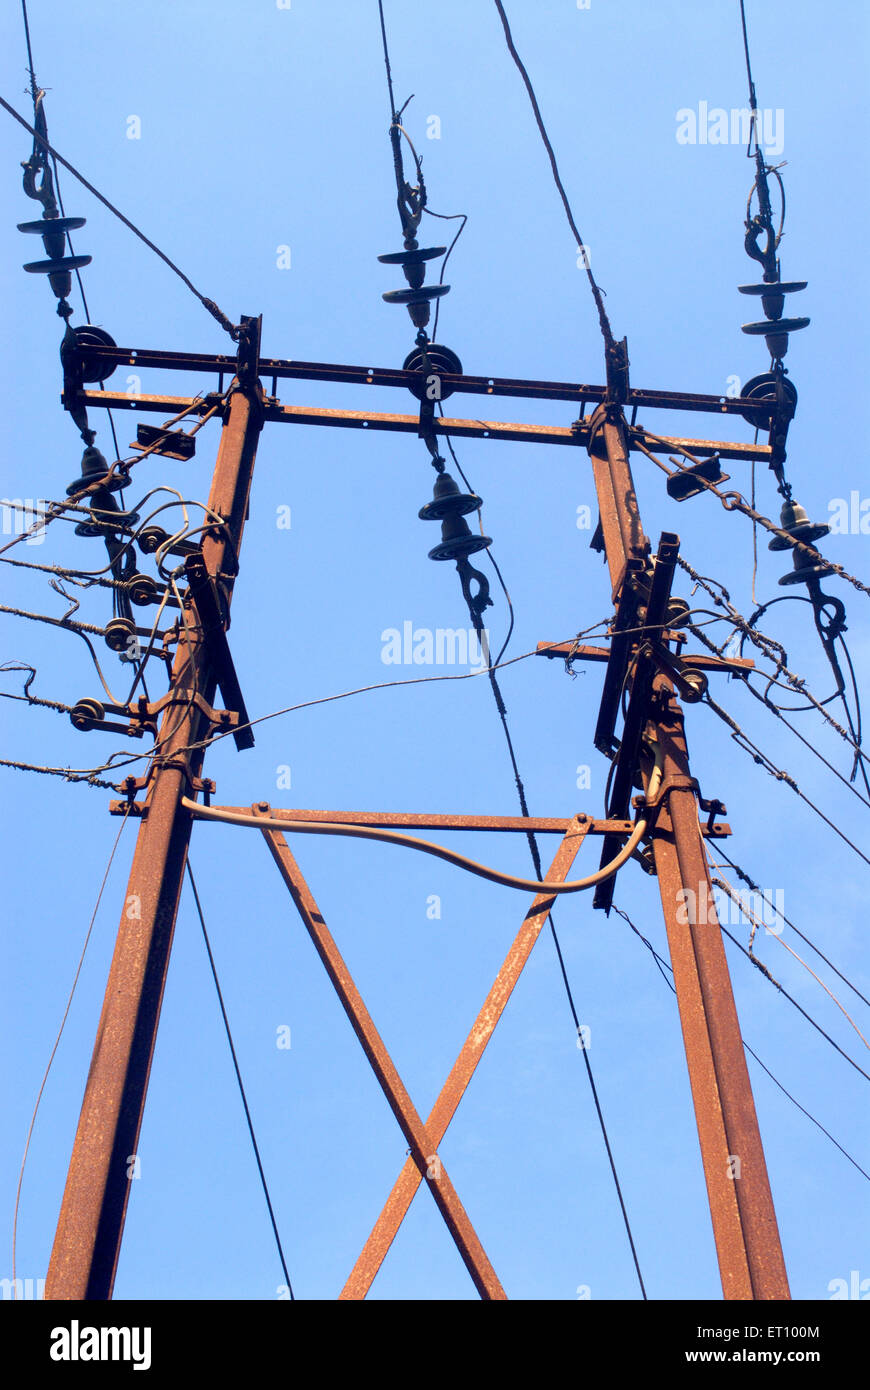 Electric pole with connections - Stock Image